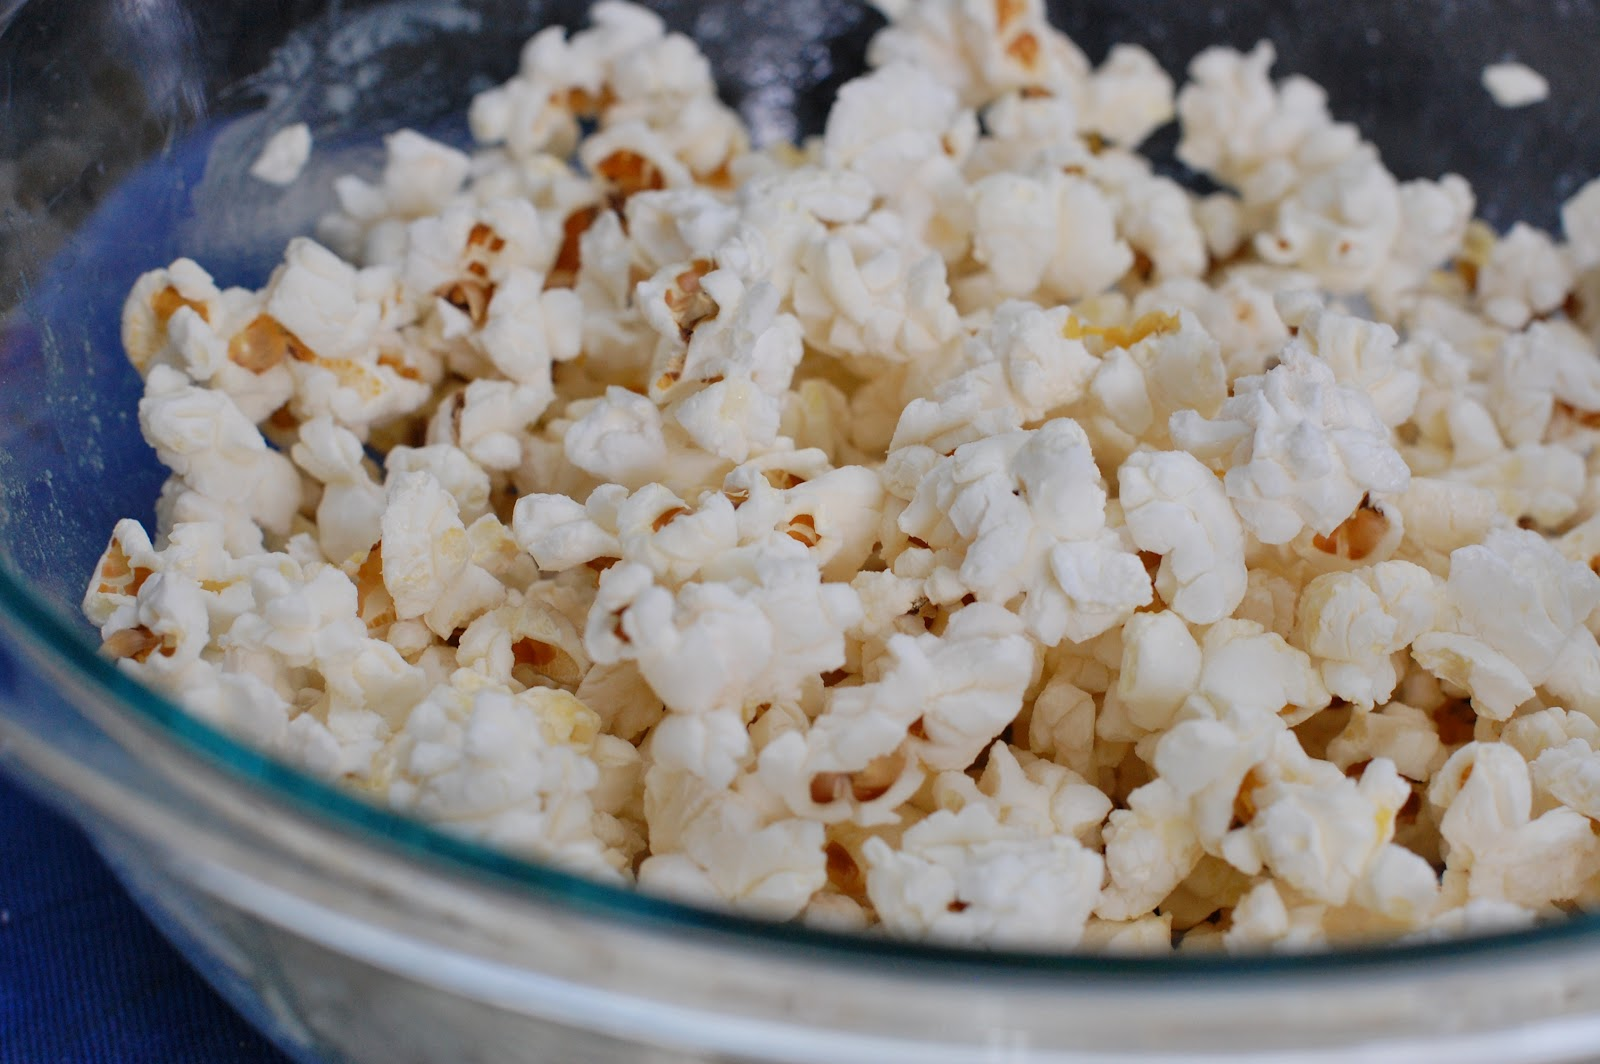 How To Pop Popcorn In Your Microwave